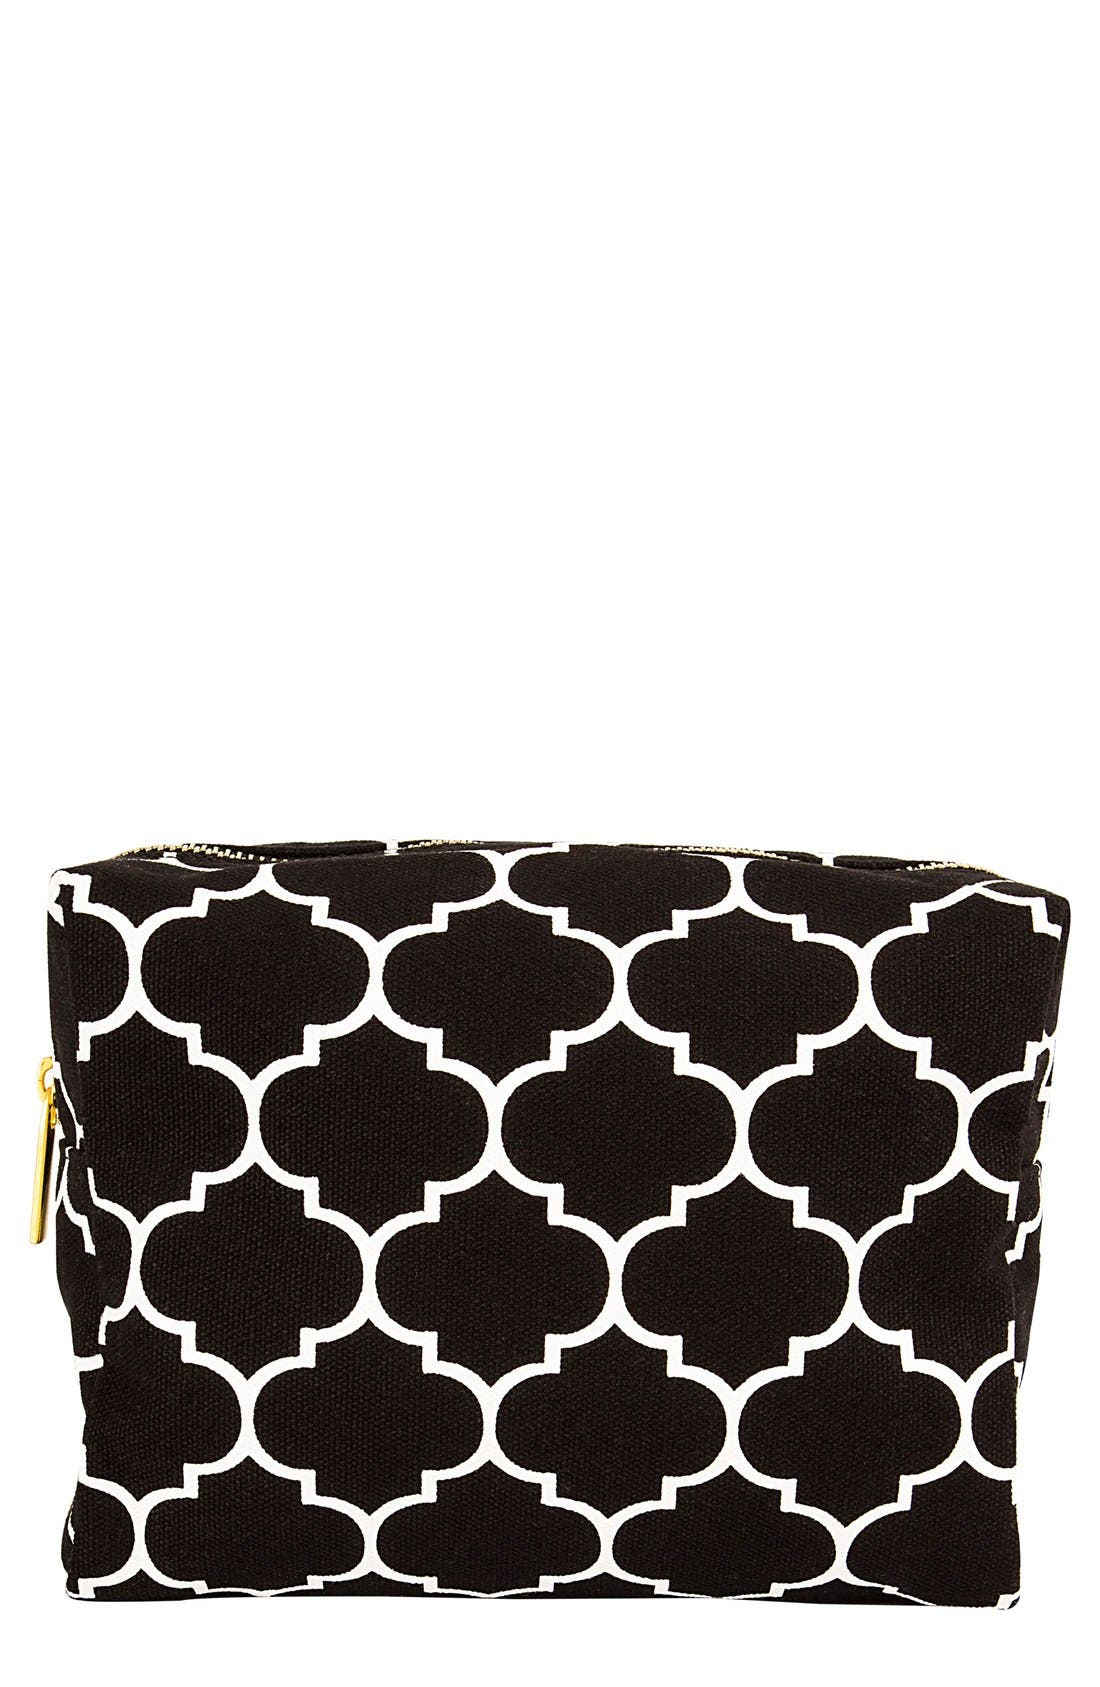 Monogram Cosmetics Bag,                             Main thumbnail 1, color,                             BLACK